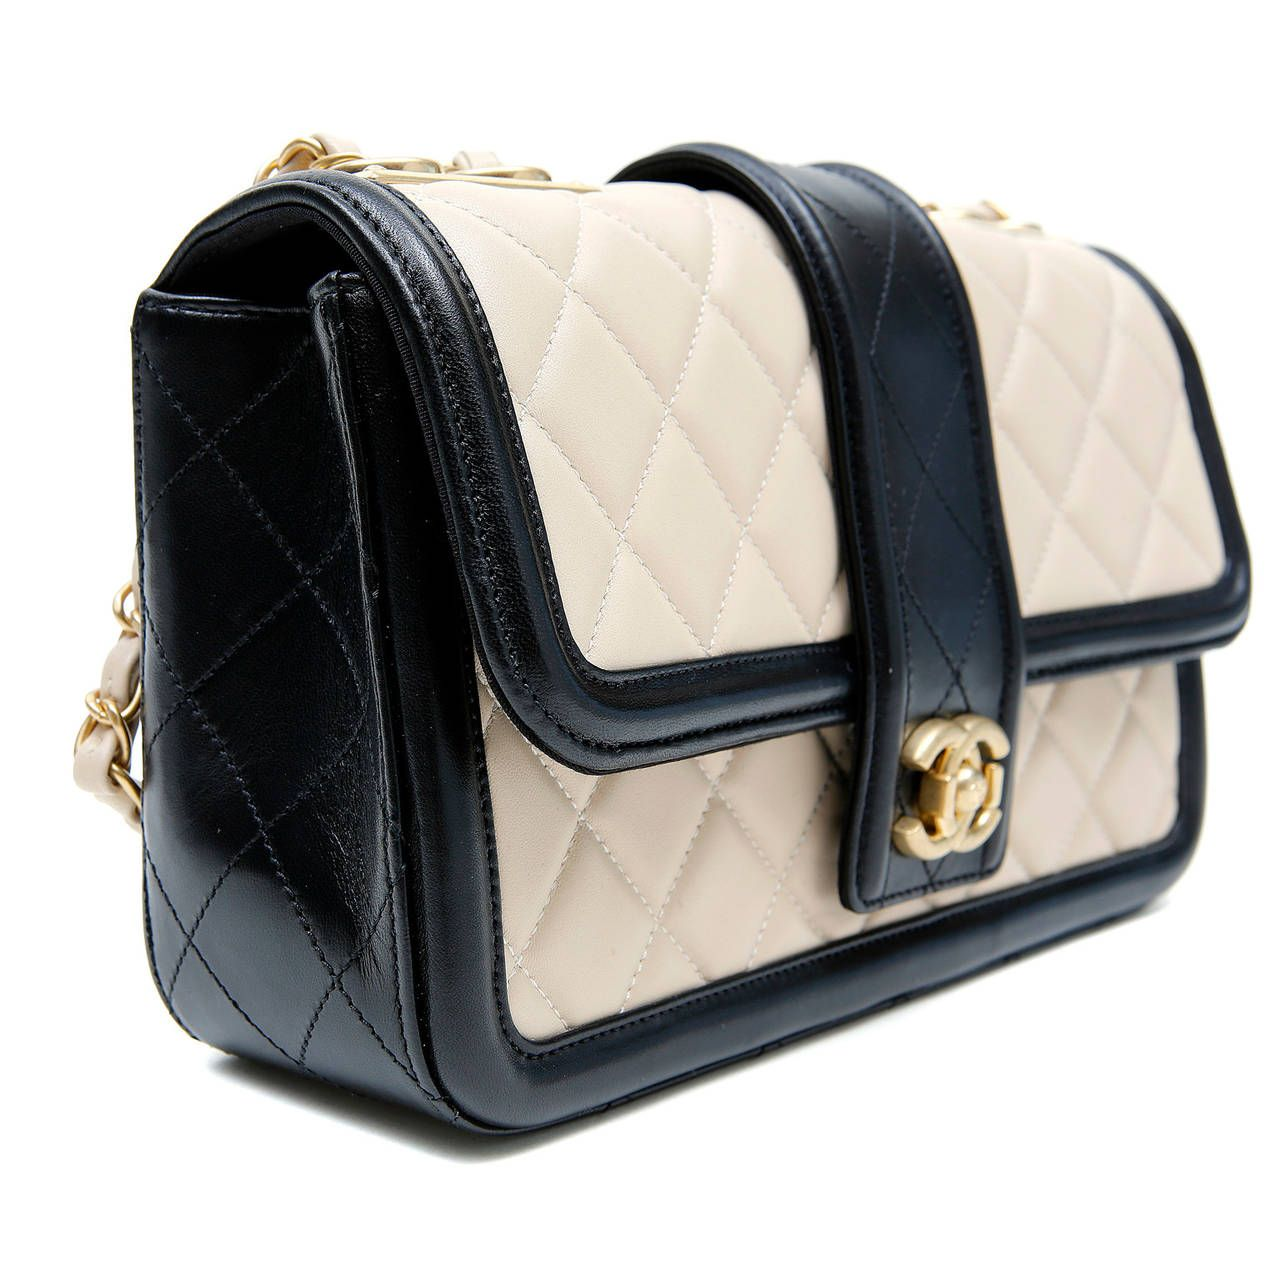 Chanel Beige Leather Black Trim Flap Bag | Black trim, Shoulder ...